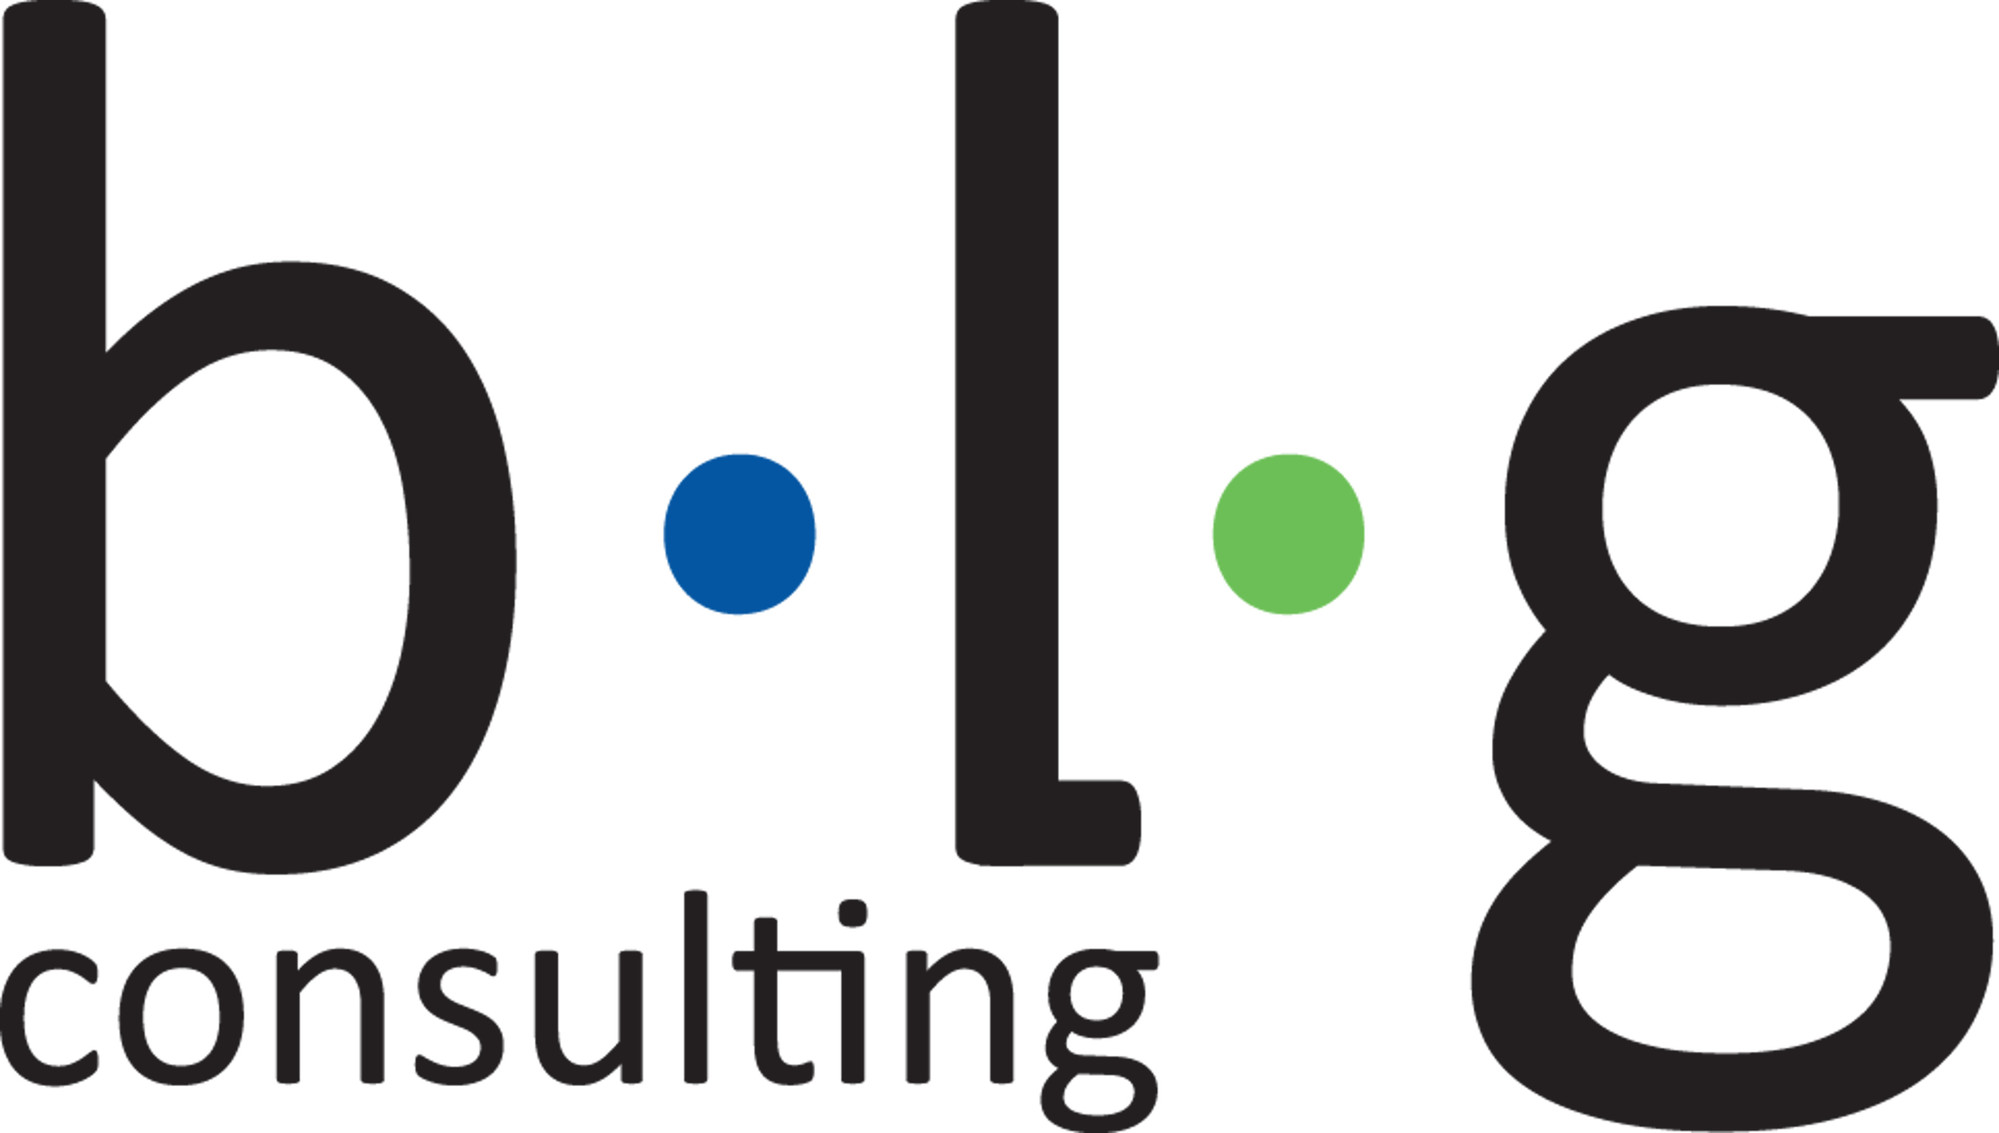 BLG CONSULTING